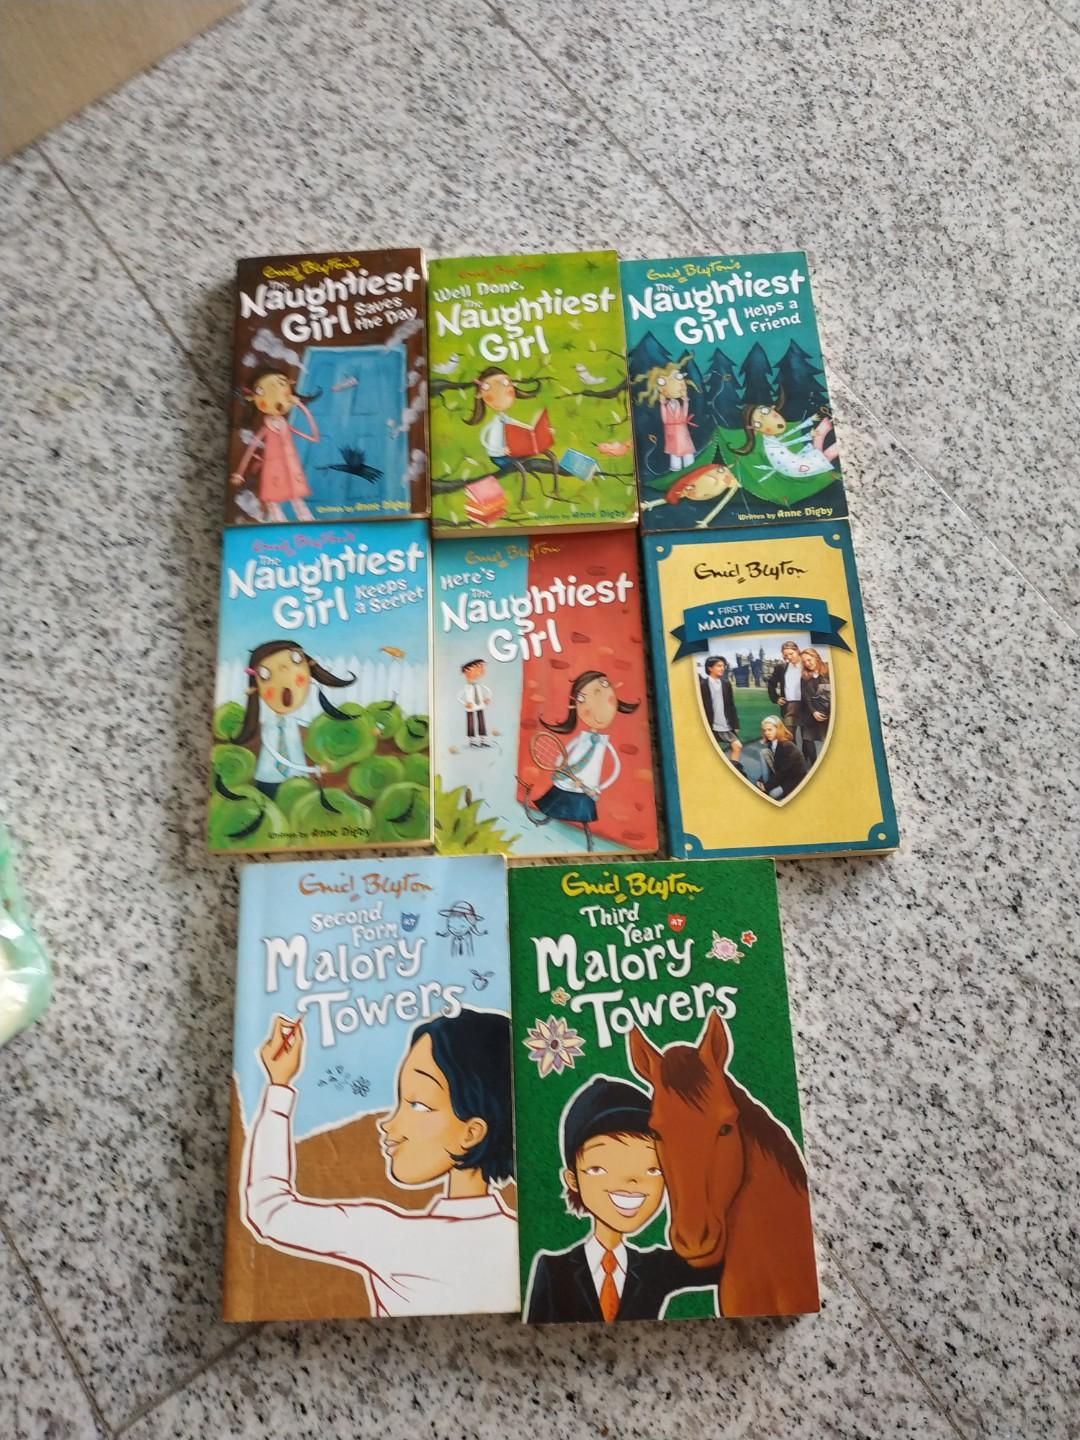 Enid Blyton Books. Naughtiest Girl & Malory Towers books